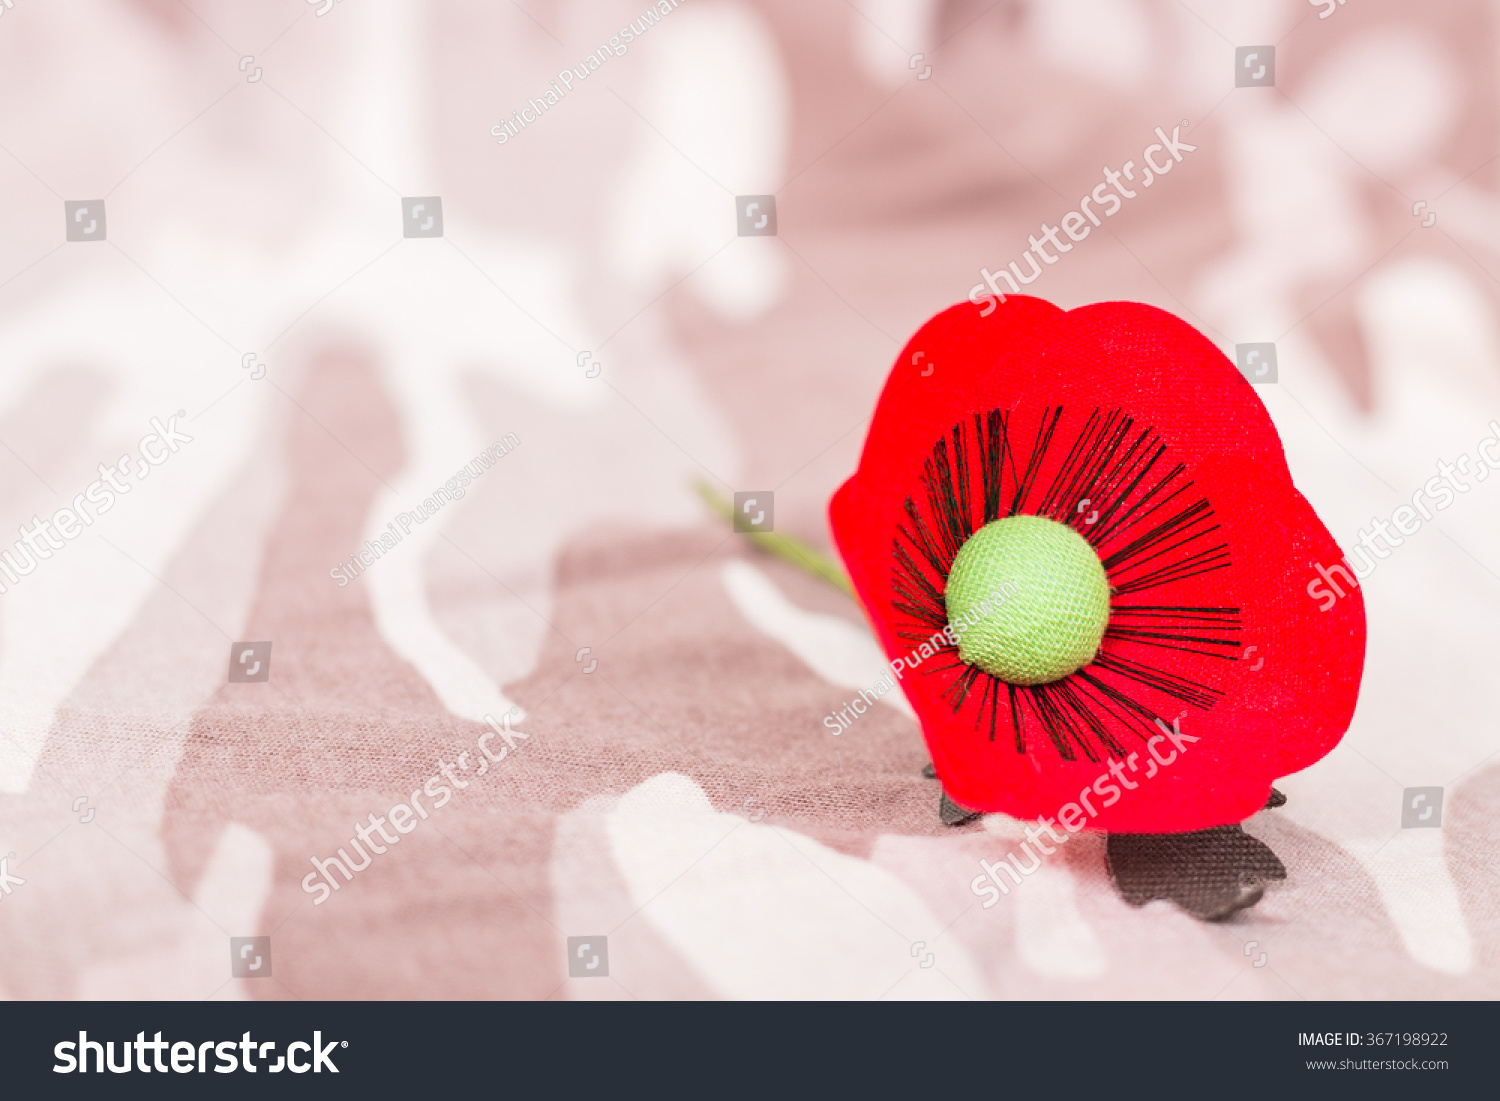 Red Poppy Symbol Thailand Veterans Day Stock Photo Safe To Use